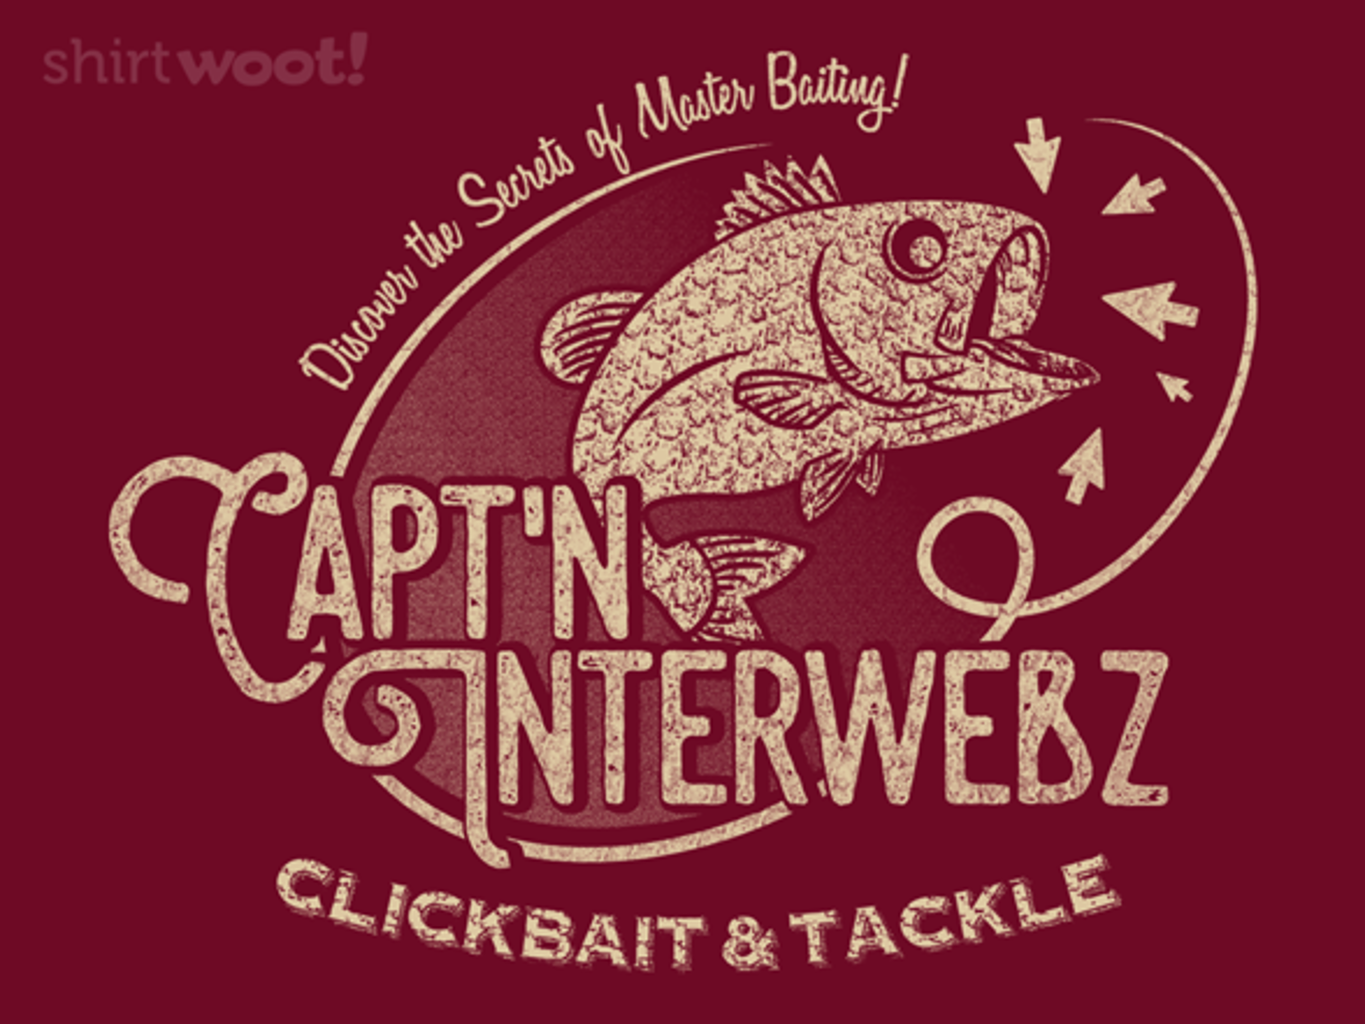 Woot!: Clickbait & Tackle